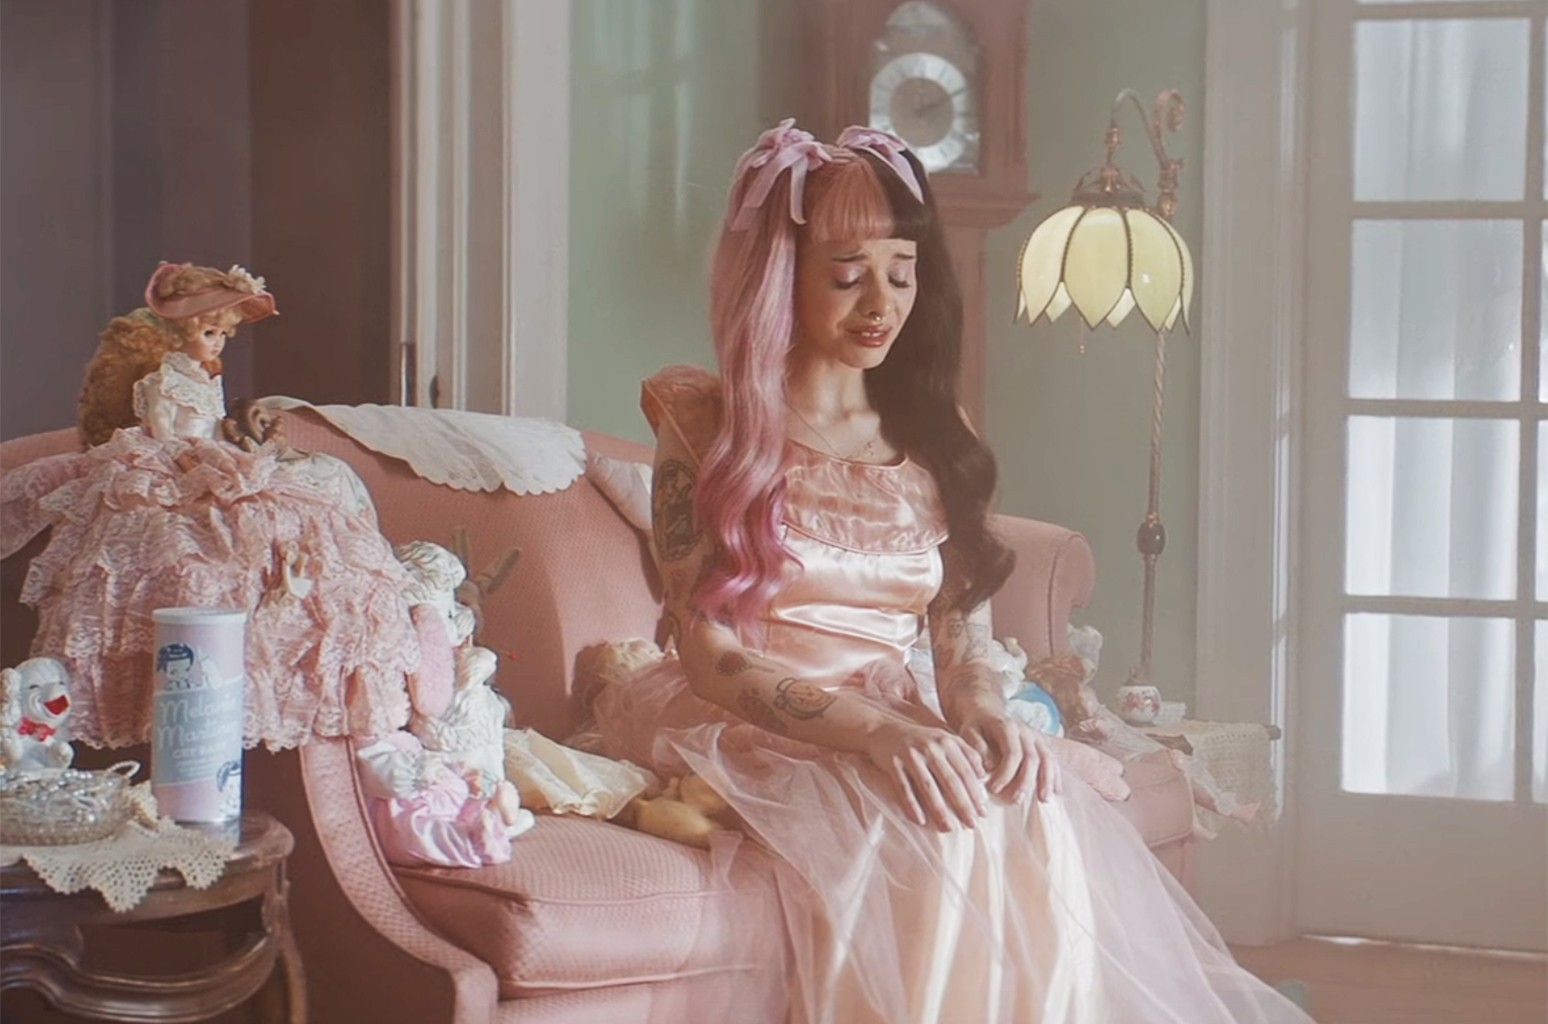 Melanie Martinez in a commercial for Cry Baby Perfume Milk.